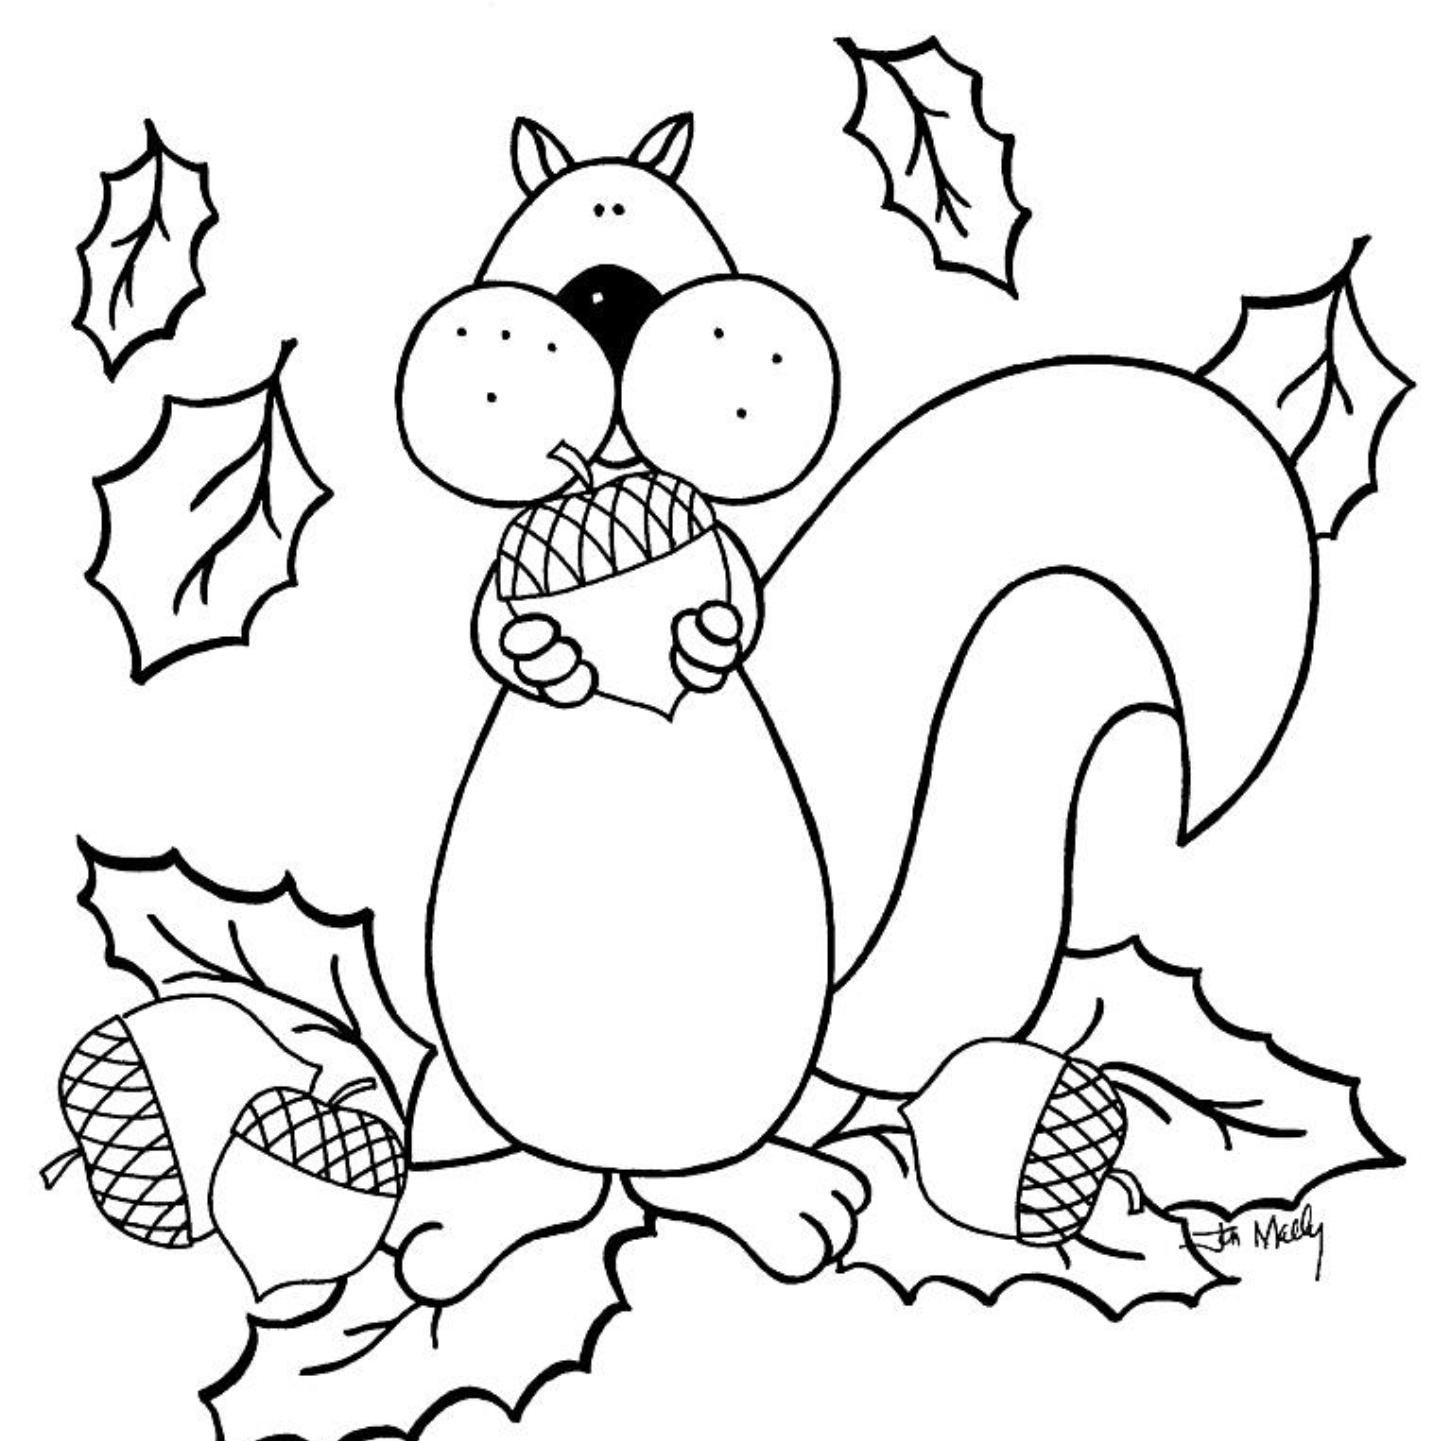 1450x1441 Compromise Fall Coloring Sheets For Kids Free